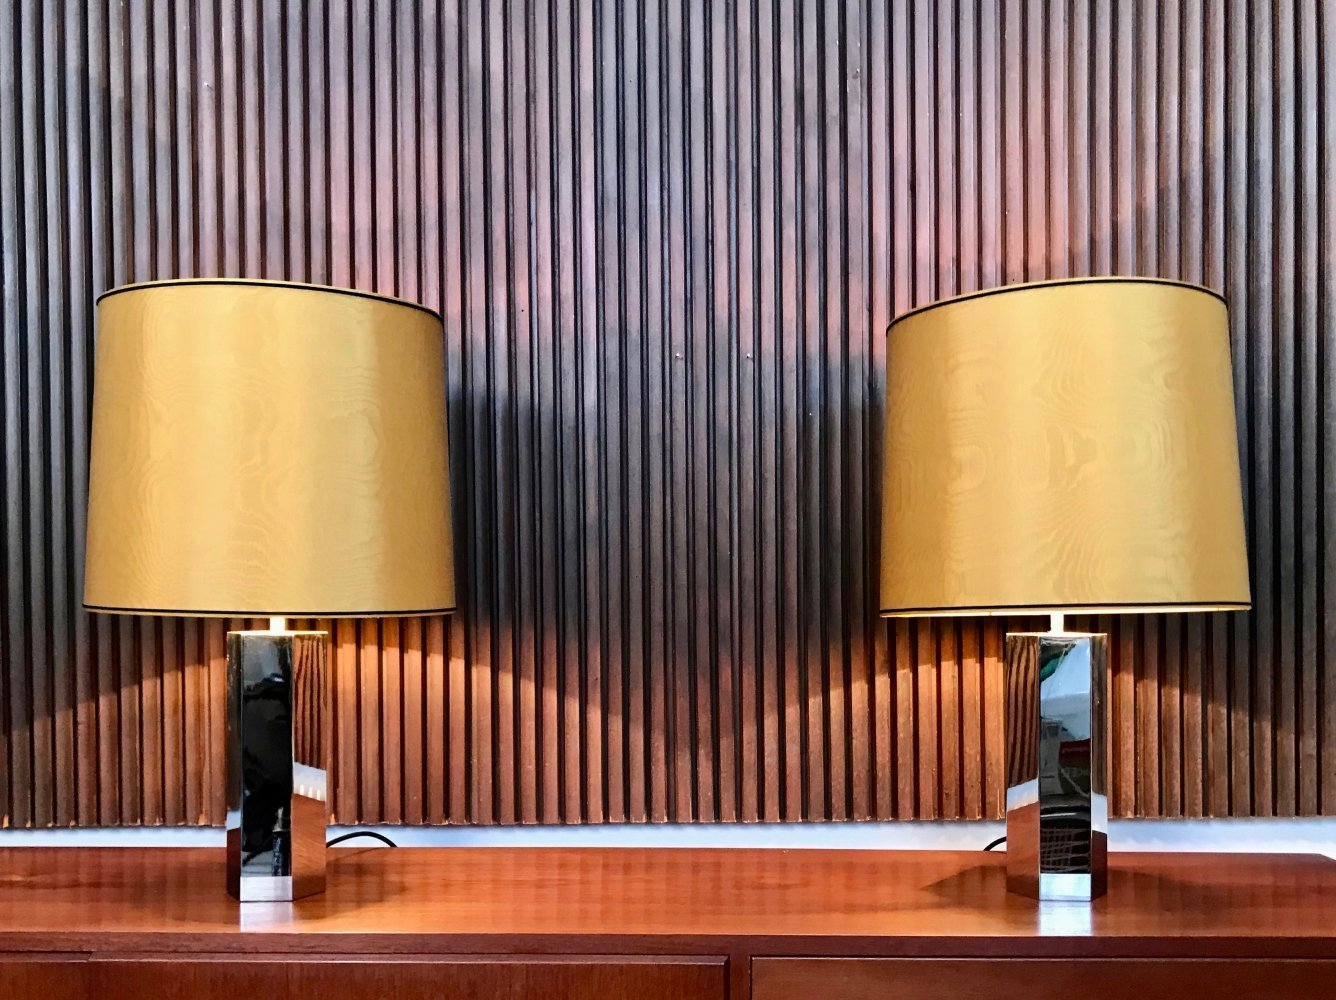 Pair of German Chromed Table Lamps by Ingo Maurer for Design M, 1960s